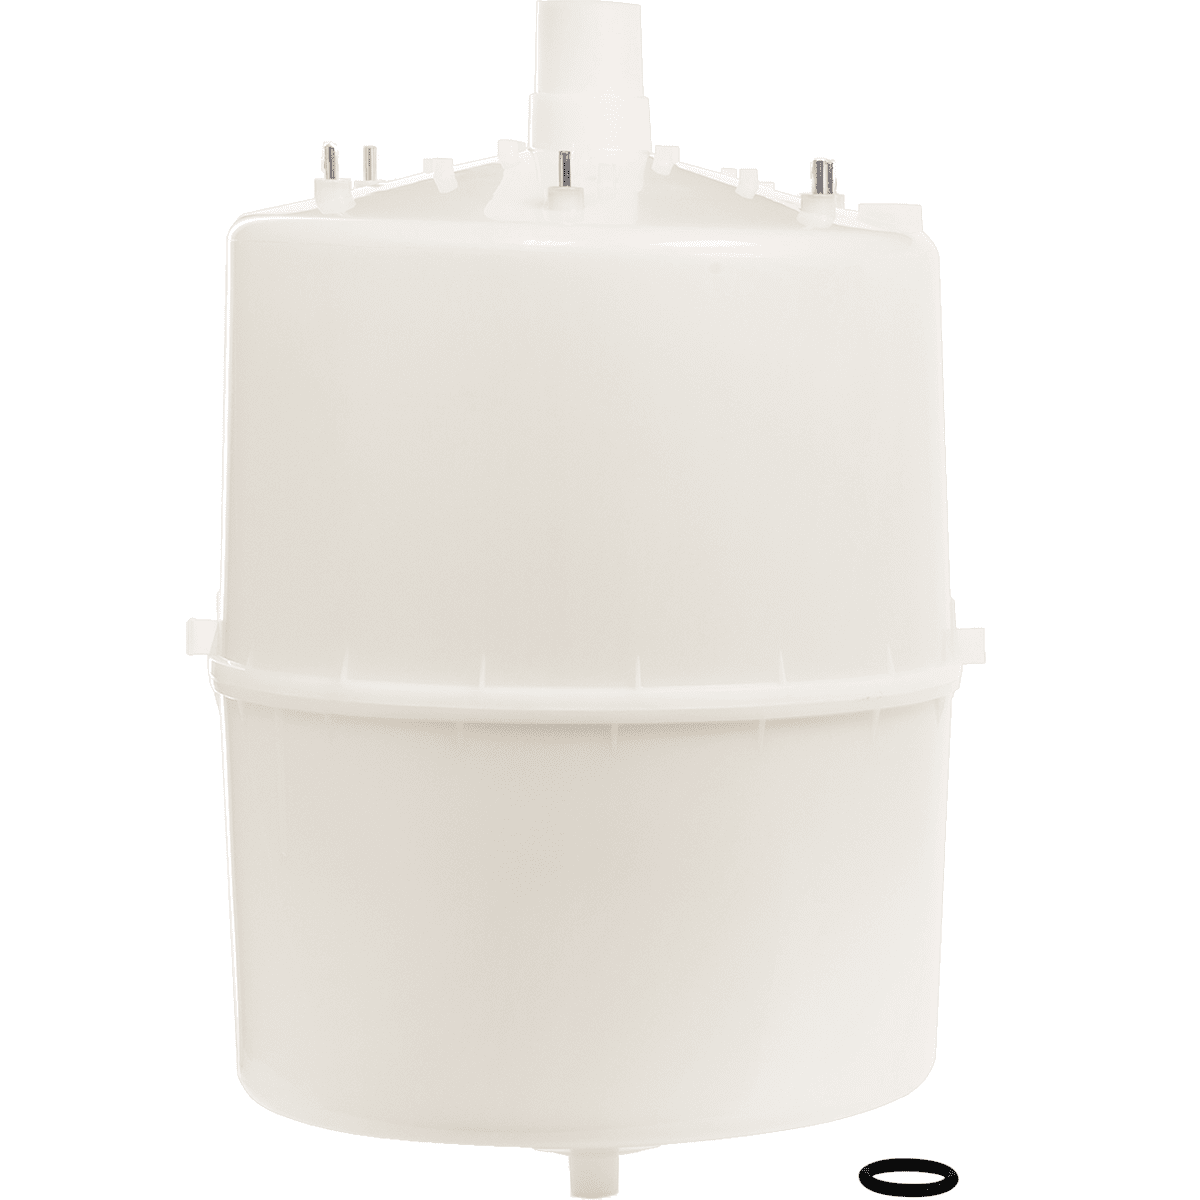 Image of Aprilaire 605a Steam Humidifier Cylinder (fits Nortec 605)